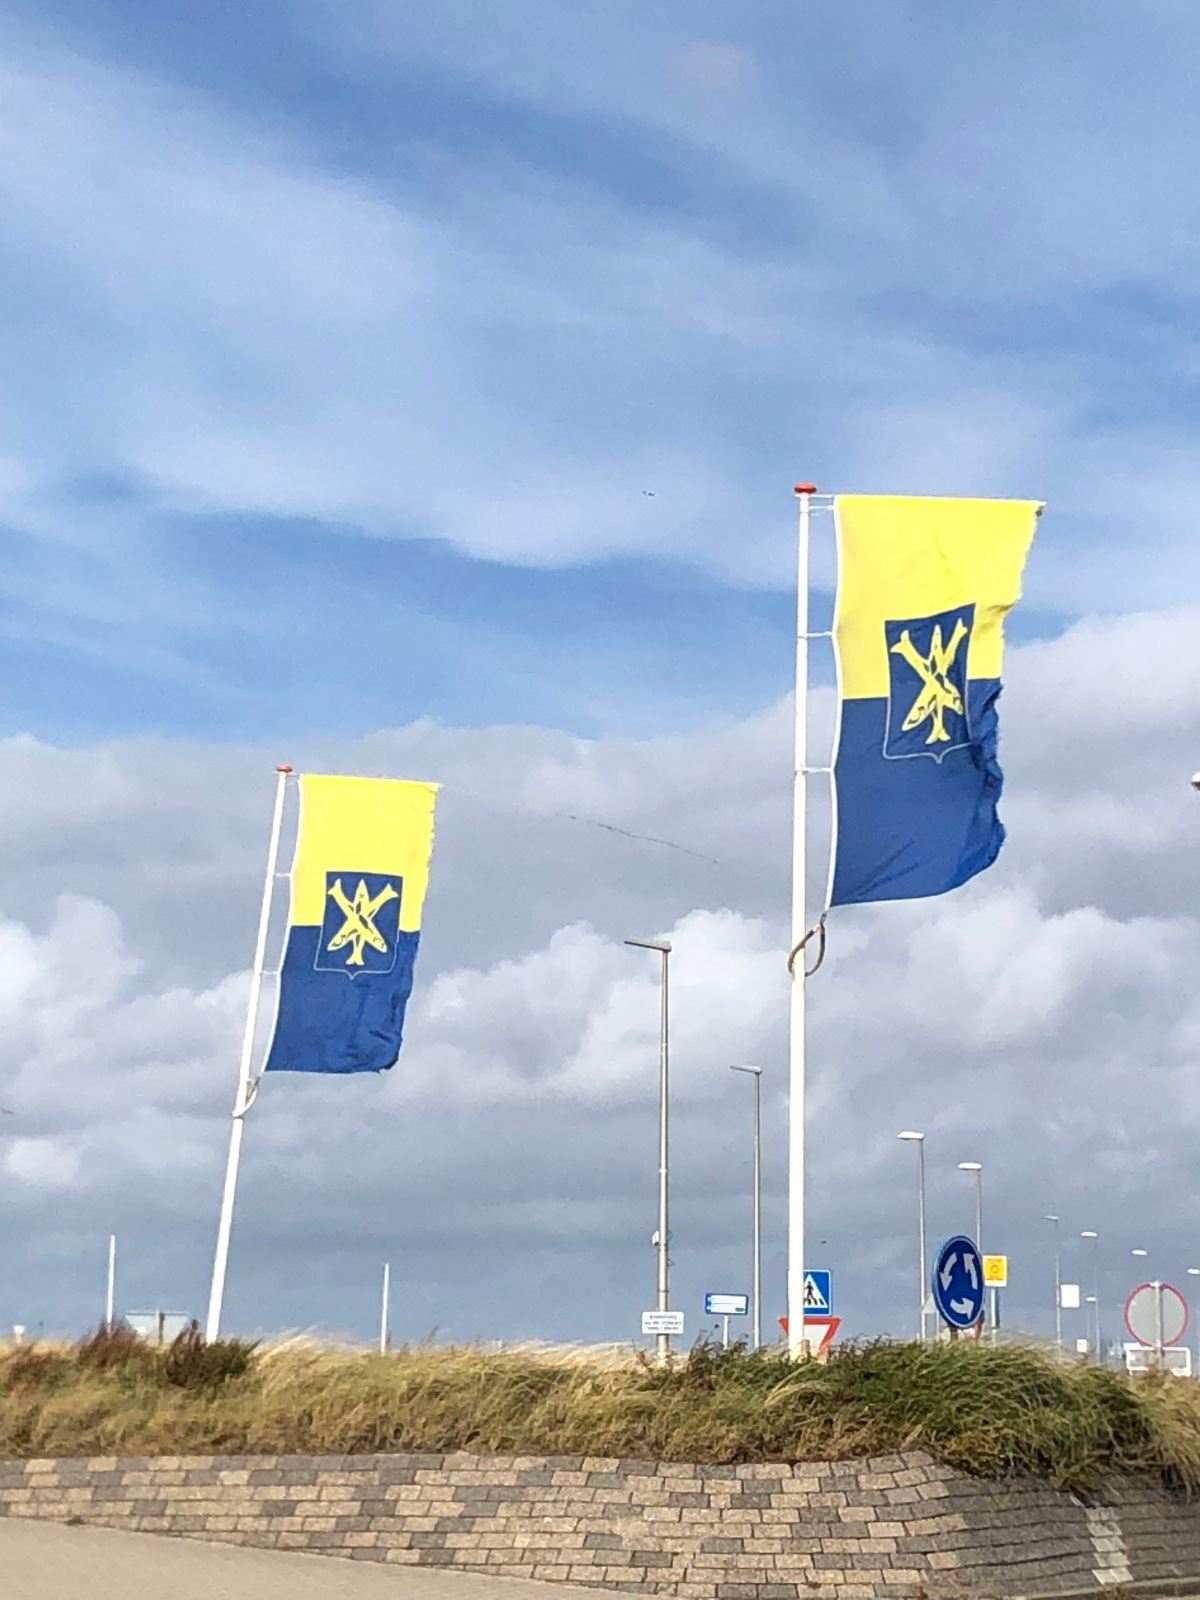 Zandvoort flags in the stiff wind